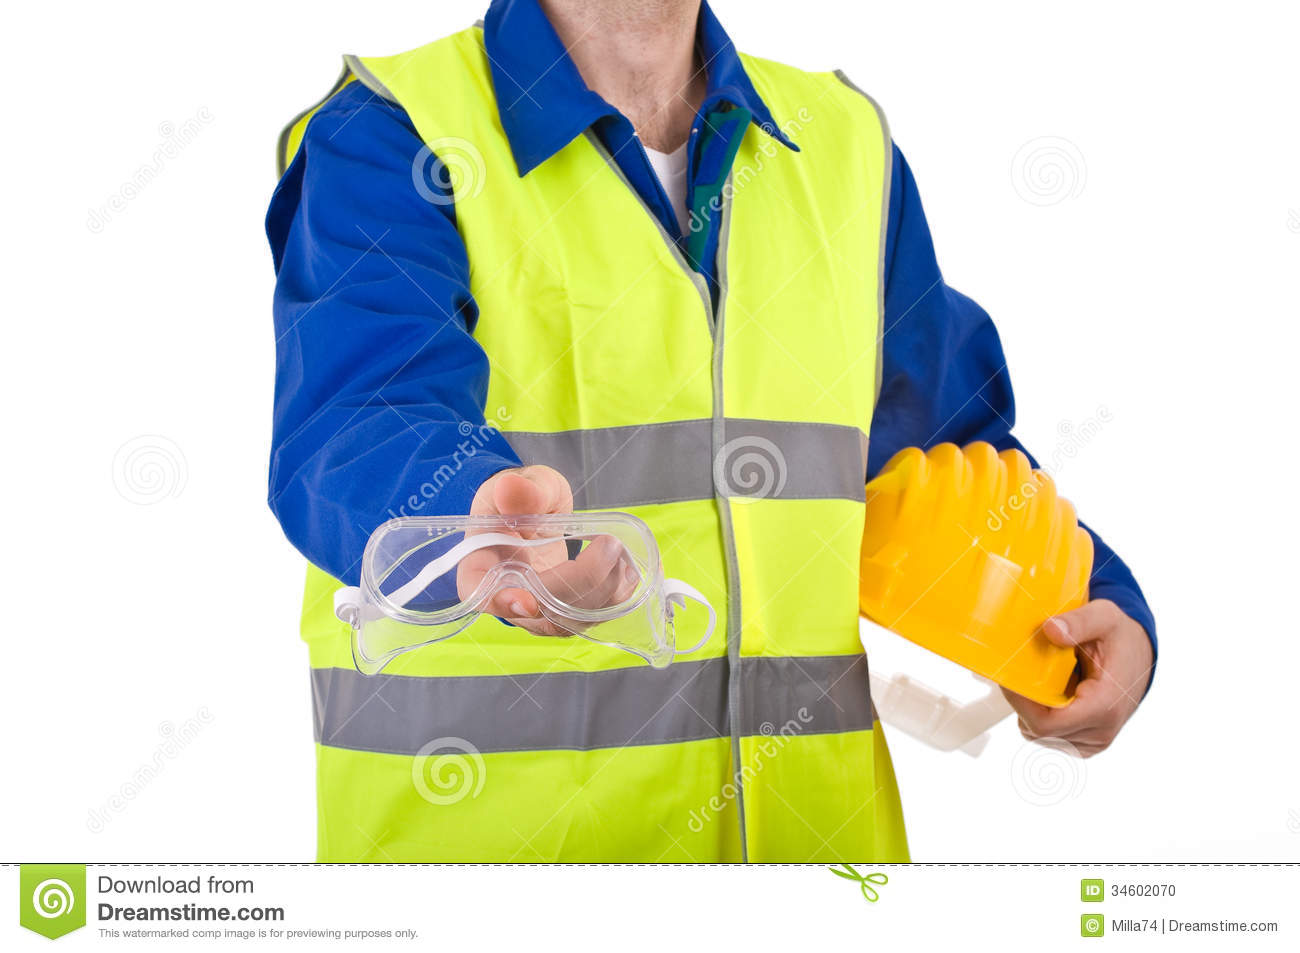 Why the Disdain for American Blue-Collar Workers?